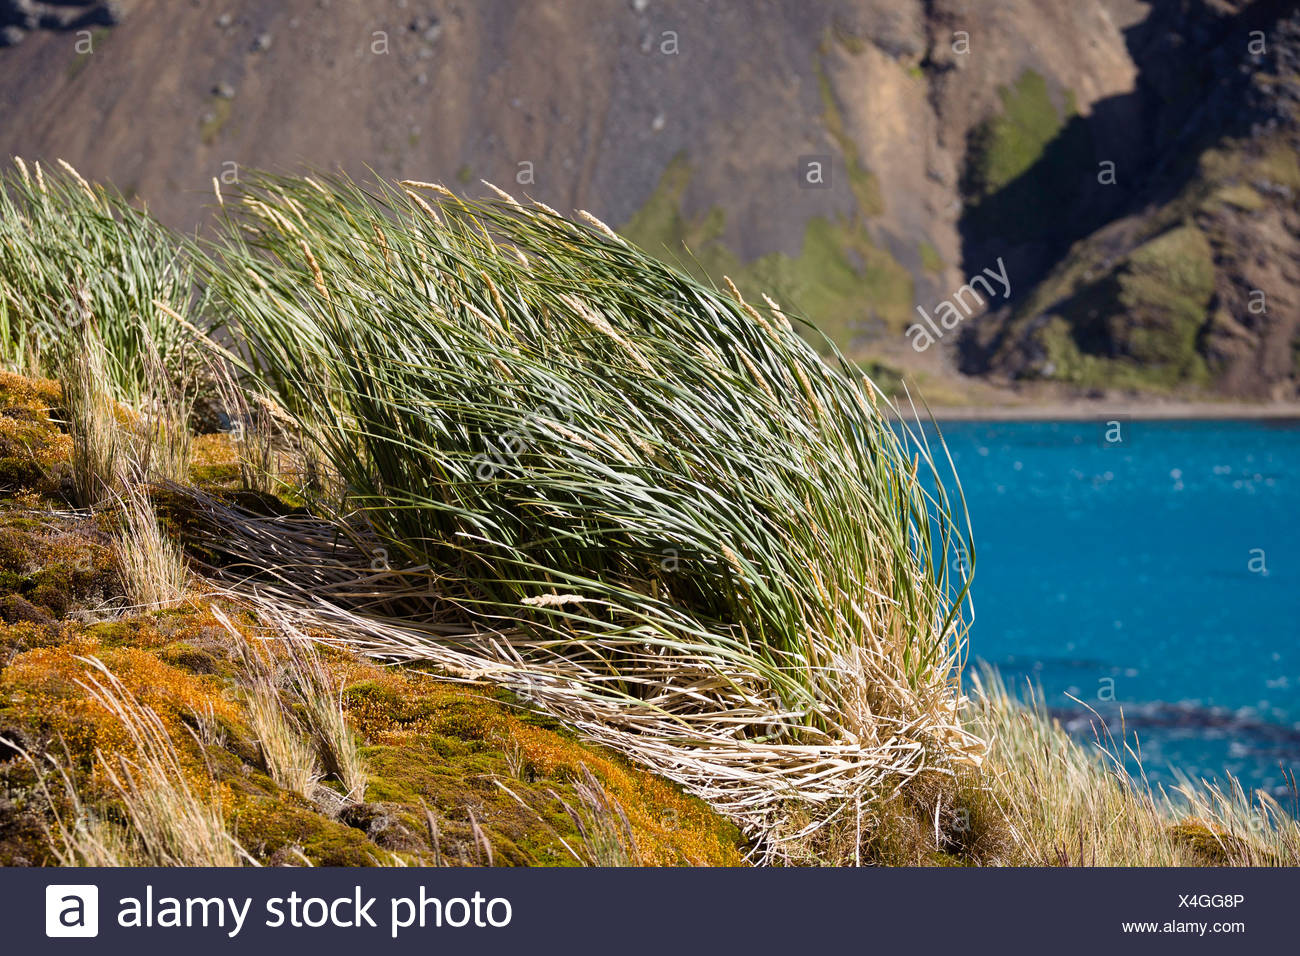 Tussock-grass, Grytviken, King Edward Cove, South Georgia, South Sandwich Islands, British Overseas Territory, Subantarctic - Stock Image